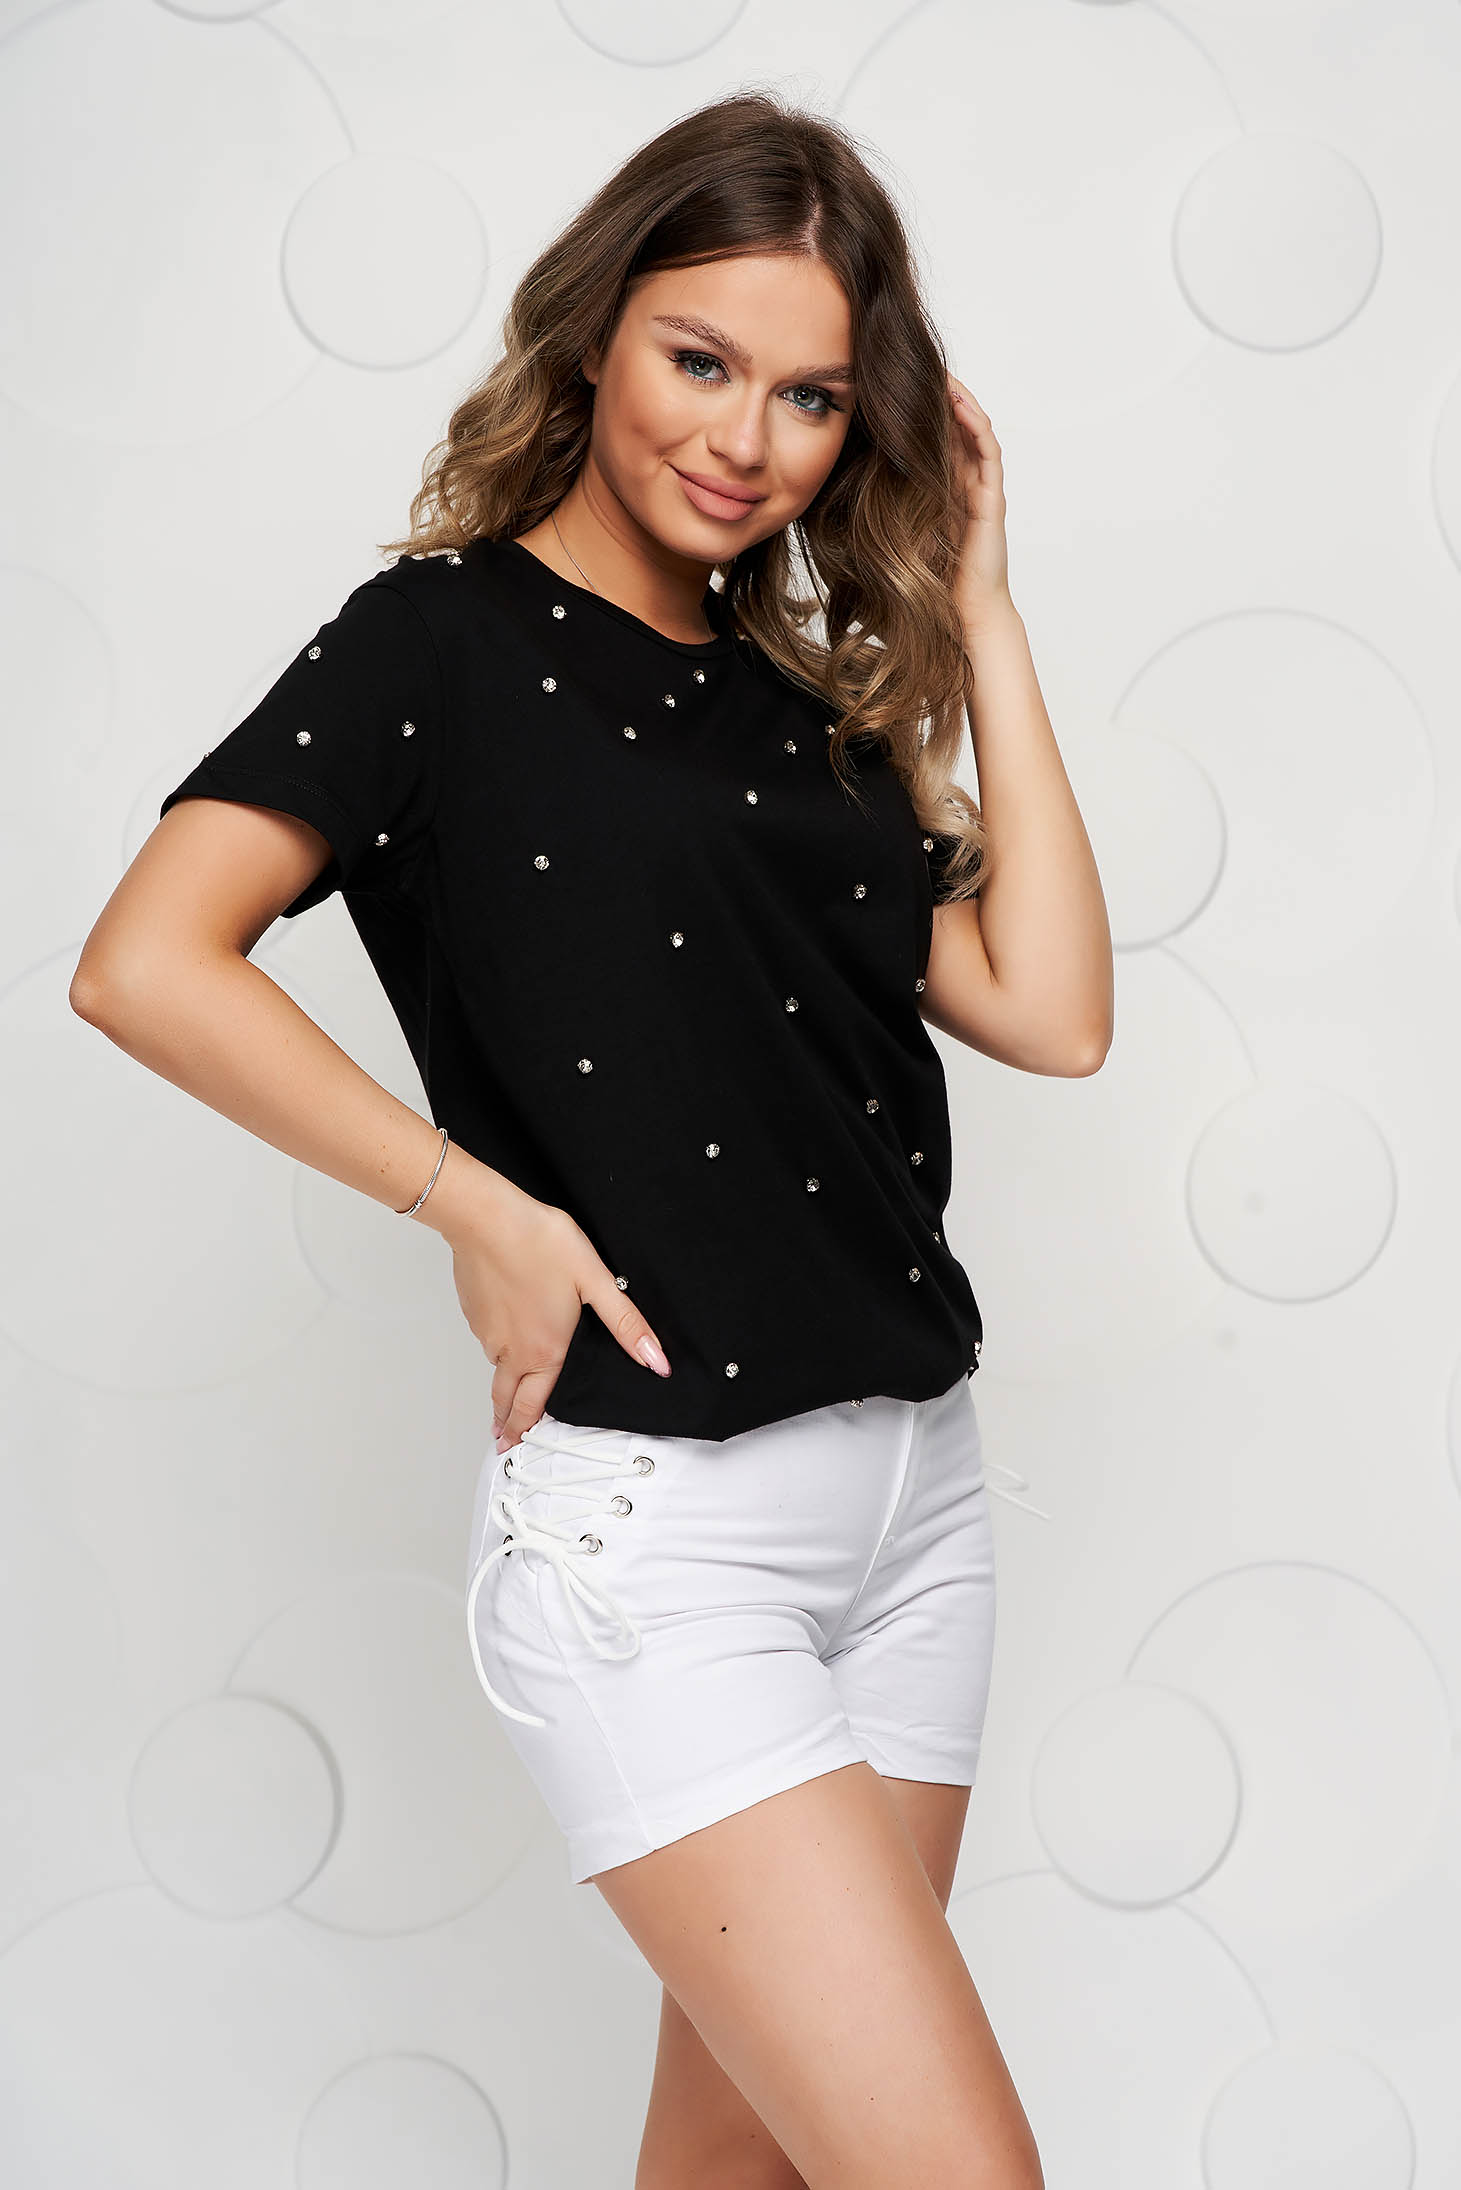 Black t-shirt strass cotton loose fit